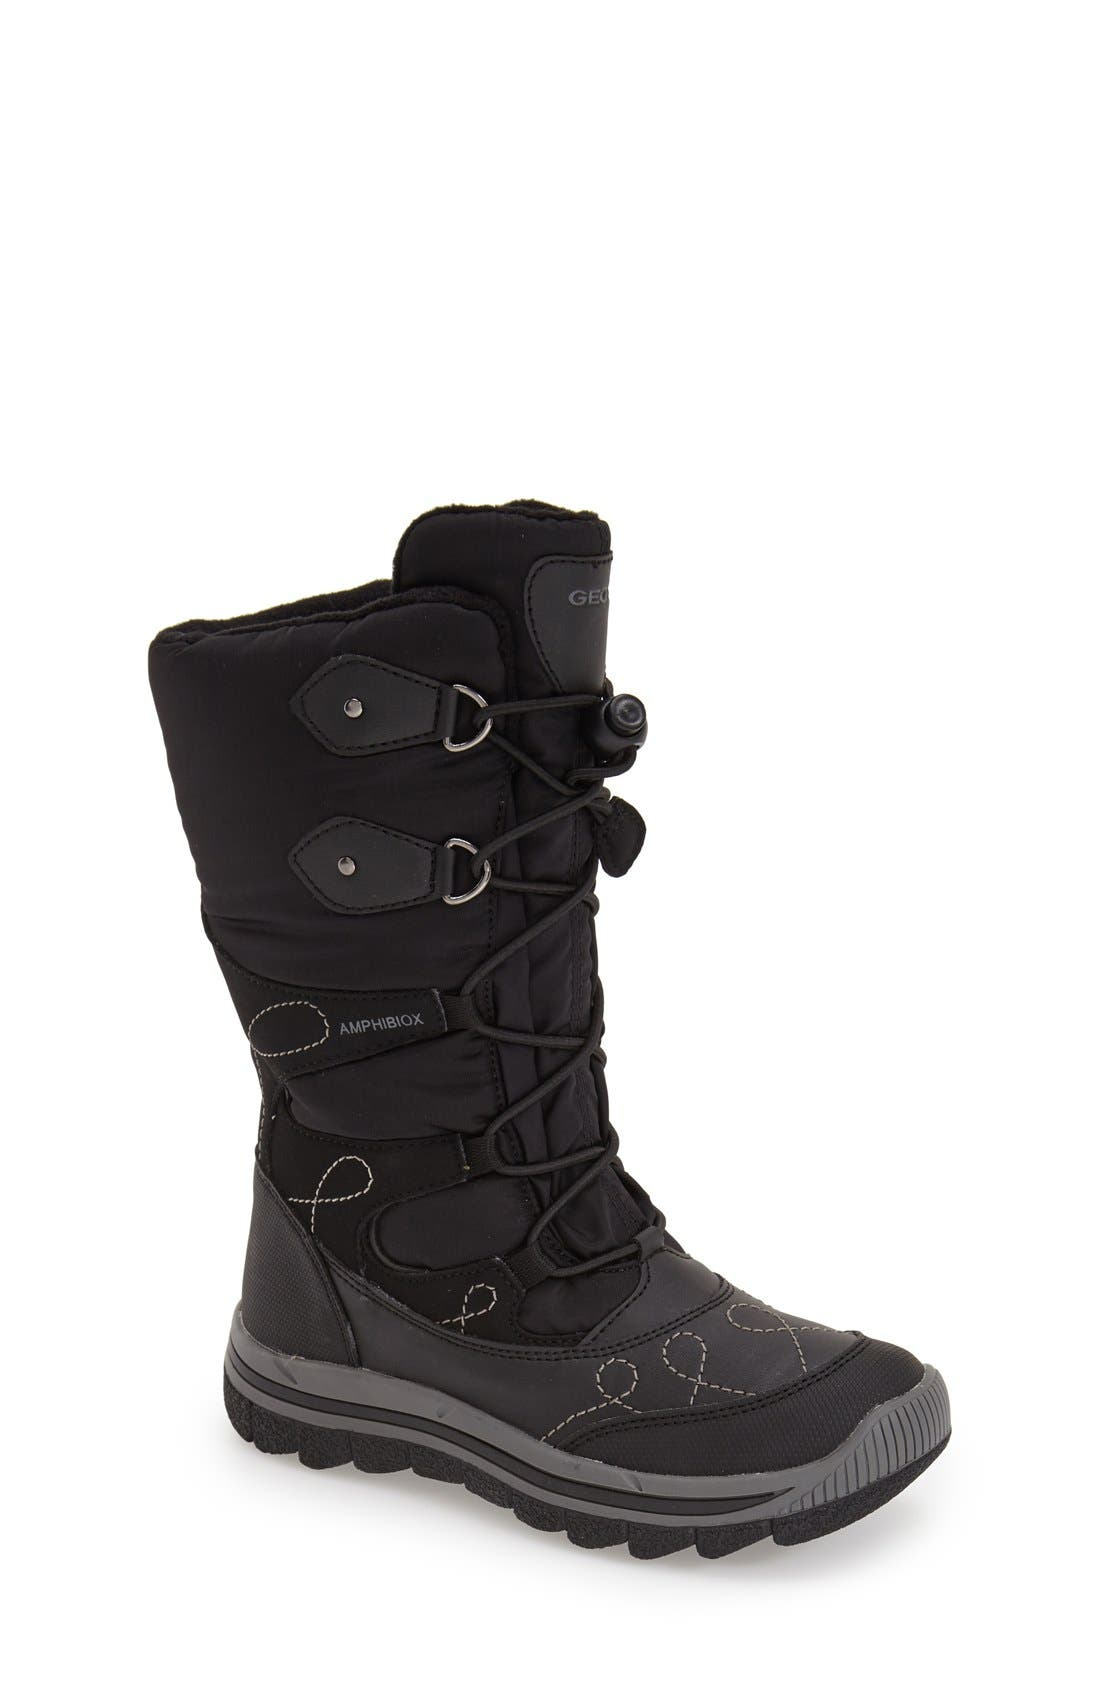 'Overland ABX' Waterproof Boot,                             Main thumbnail 1, color,                             001